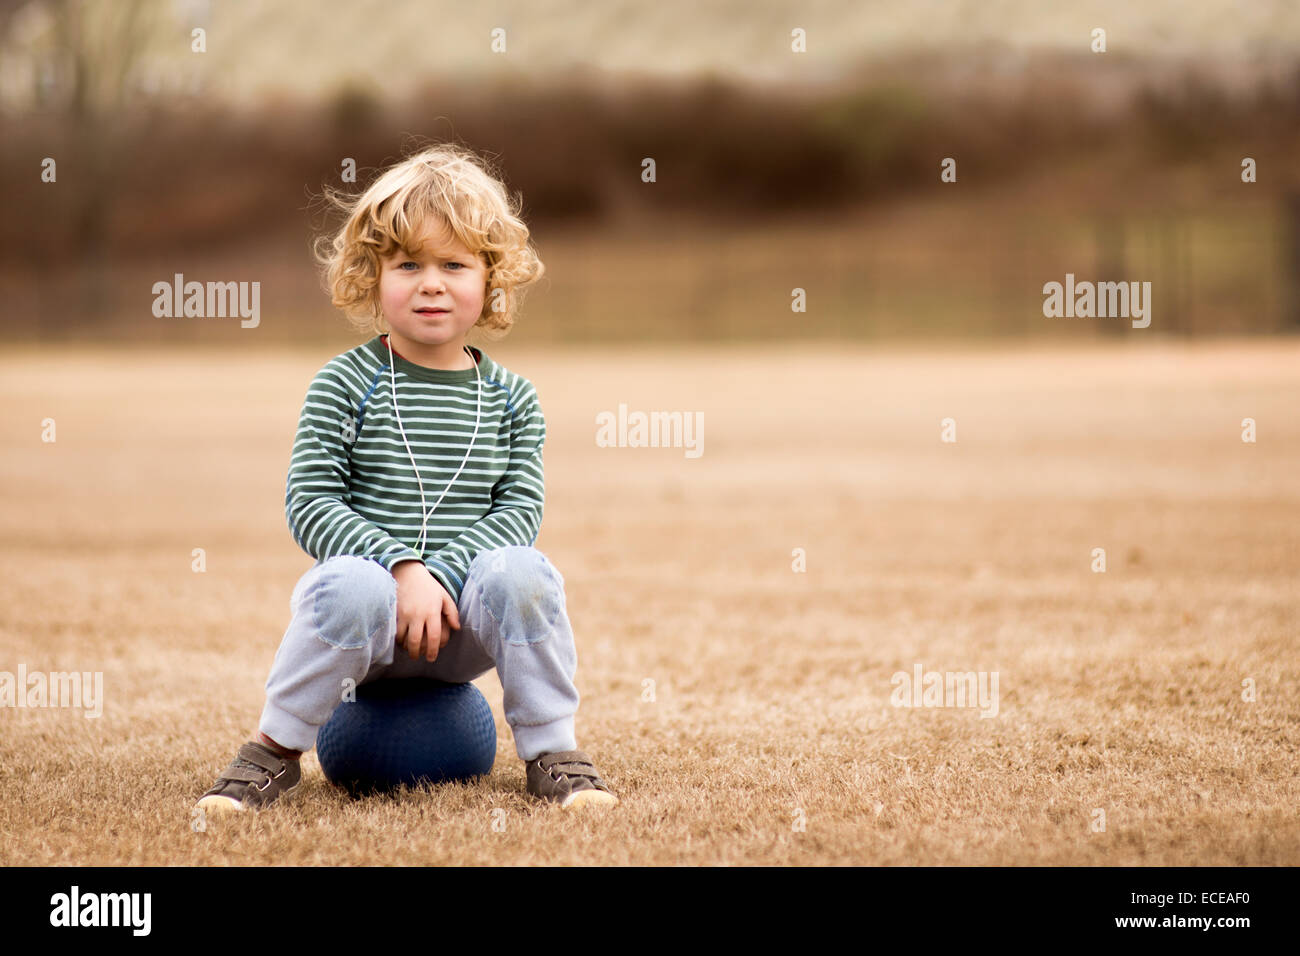 USA, South Carolina, Greenville County, Greenville, Boy (2-3) with ball in soccer field - Stock Image